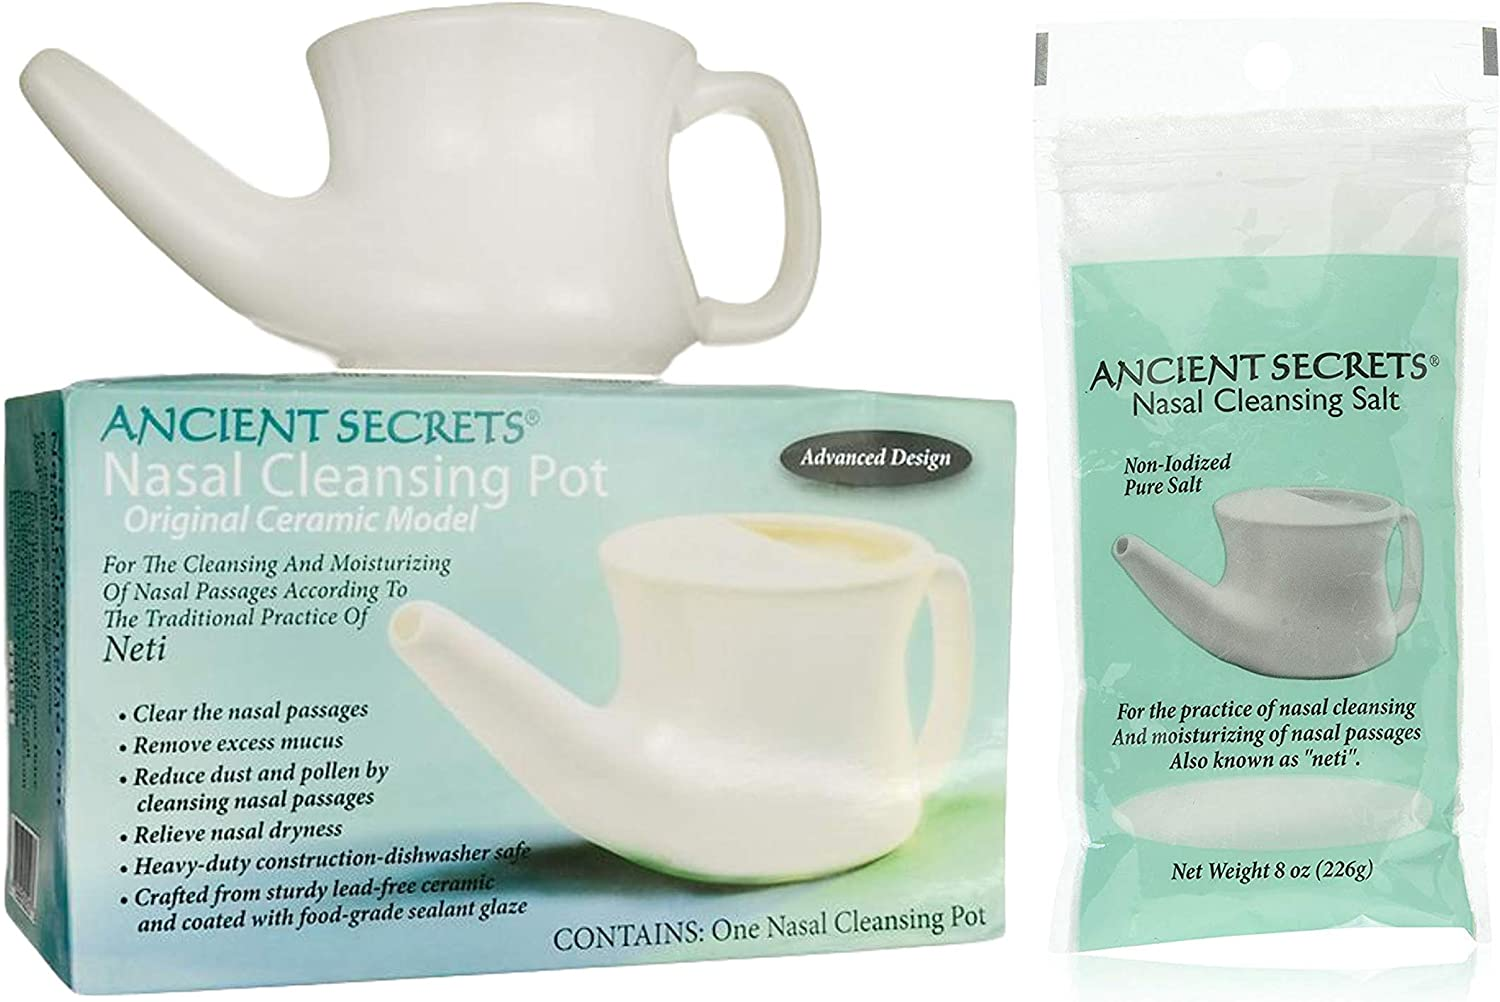 Ancient Secrets Nasal Cleansing Ceramic Neti Pot with Nasal Cleansing Non-Iodized Pure Real Salt Packet 8oz (226g) — for Traditional Sinus Rinse and Nasal Irrigation